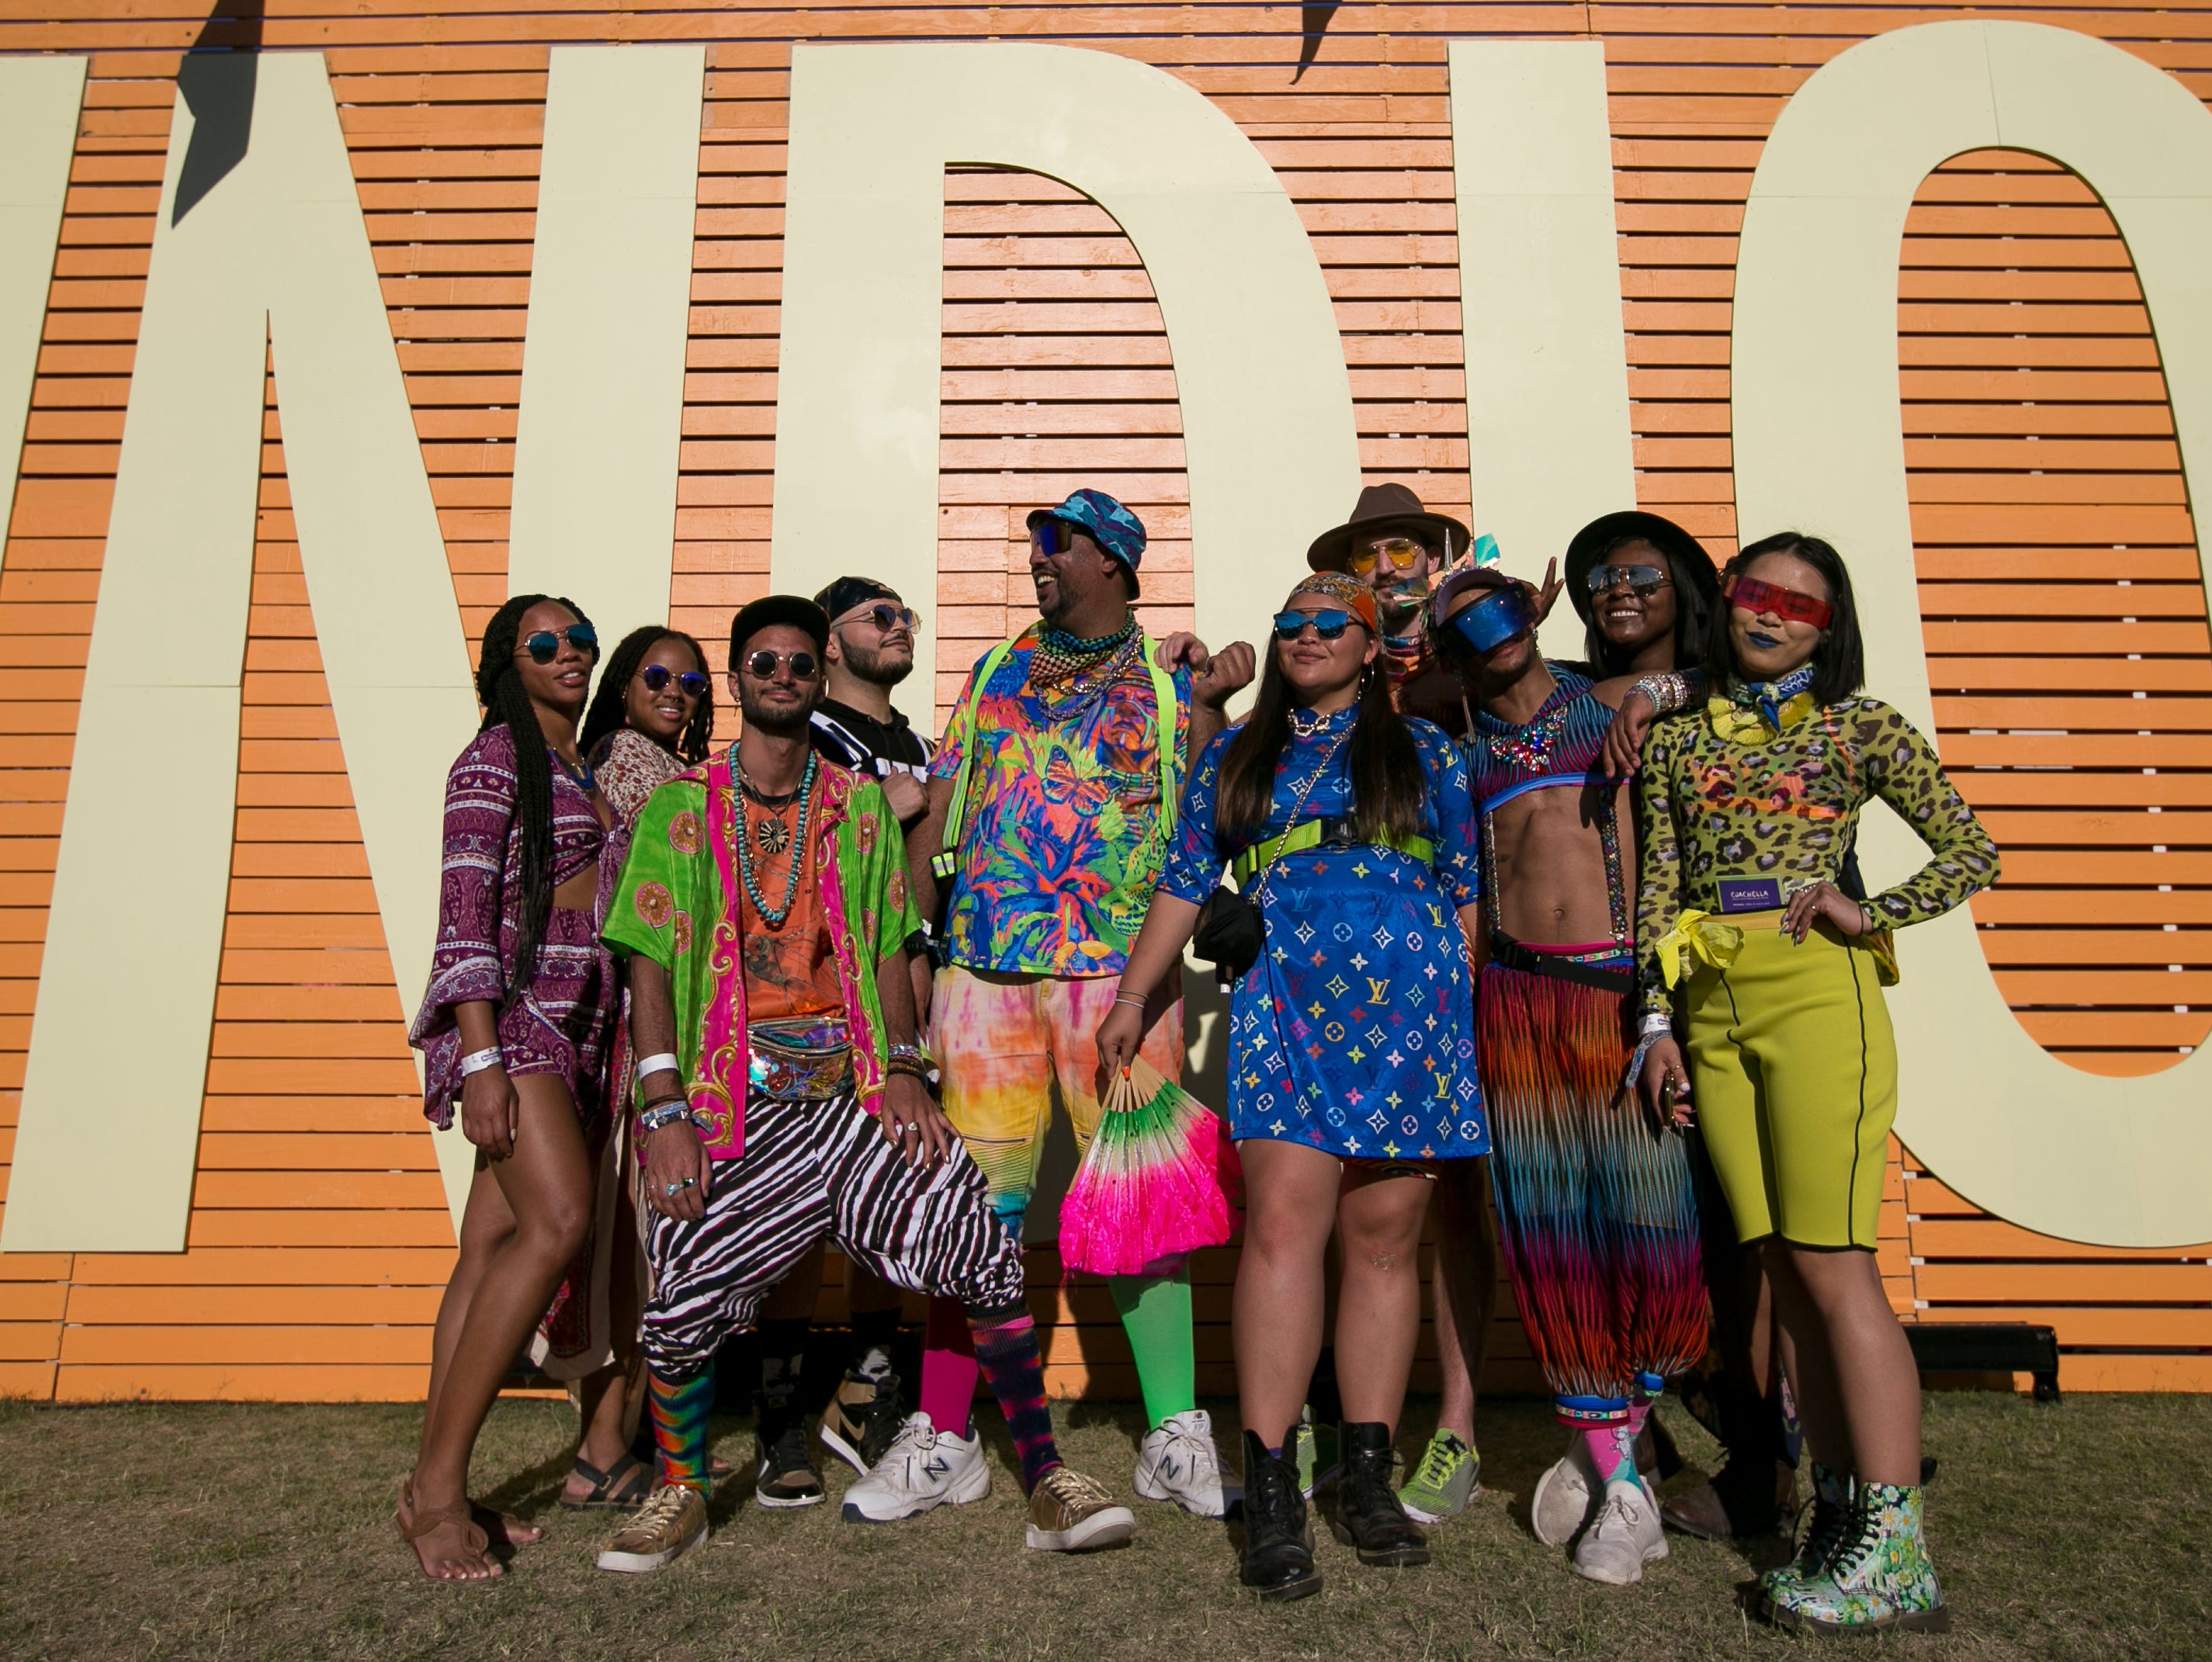 The #Pimphouse group poses in front of the INDIO sign at Coachella 2019 in Indio, Calif. on Sat. April 13, 2019.